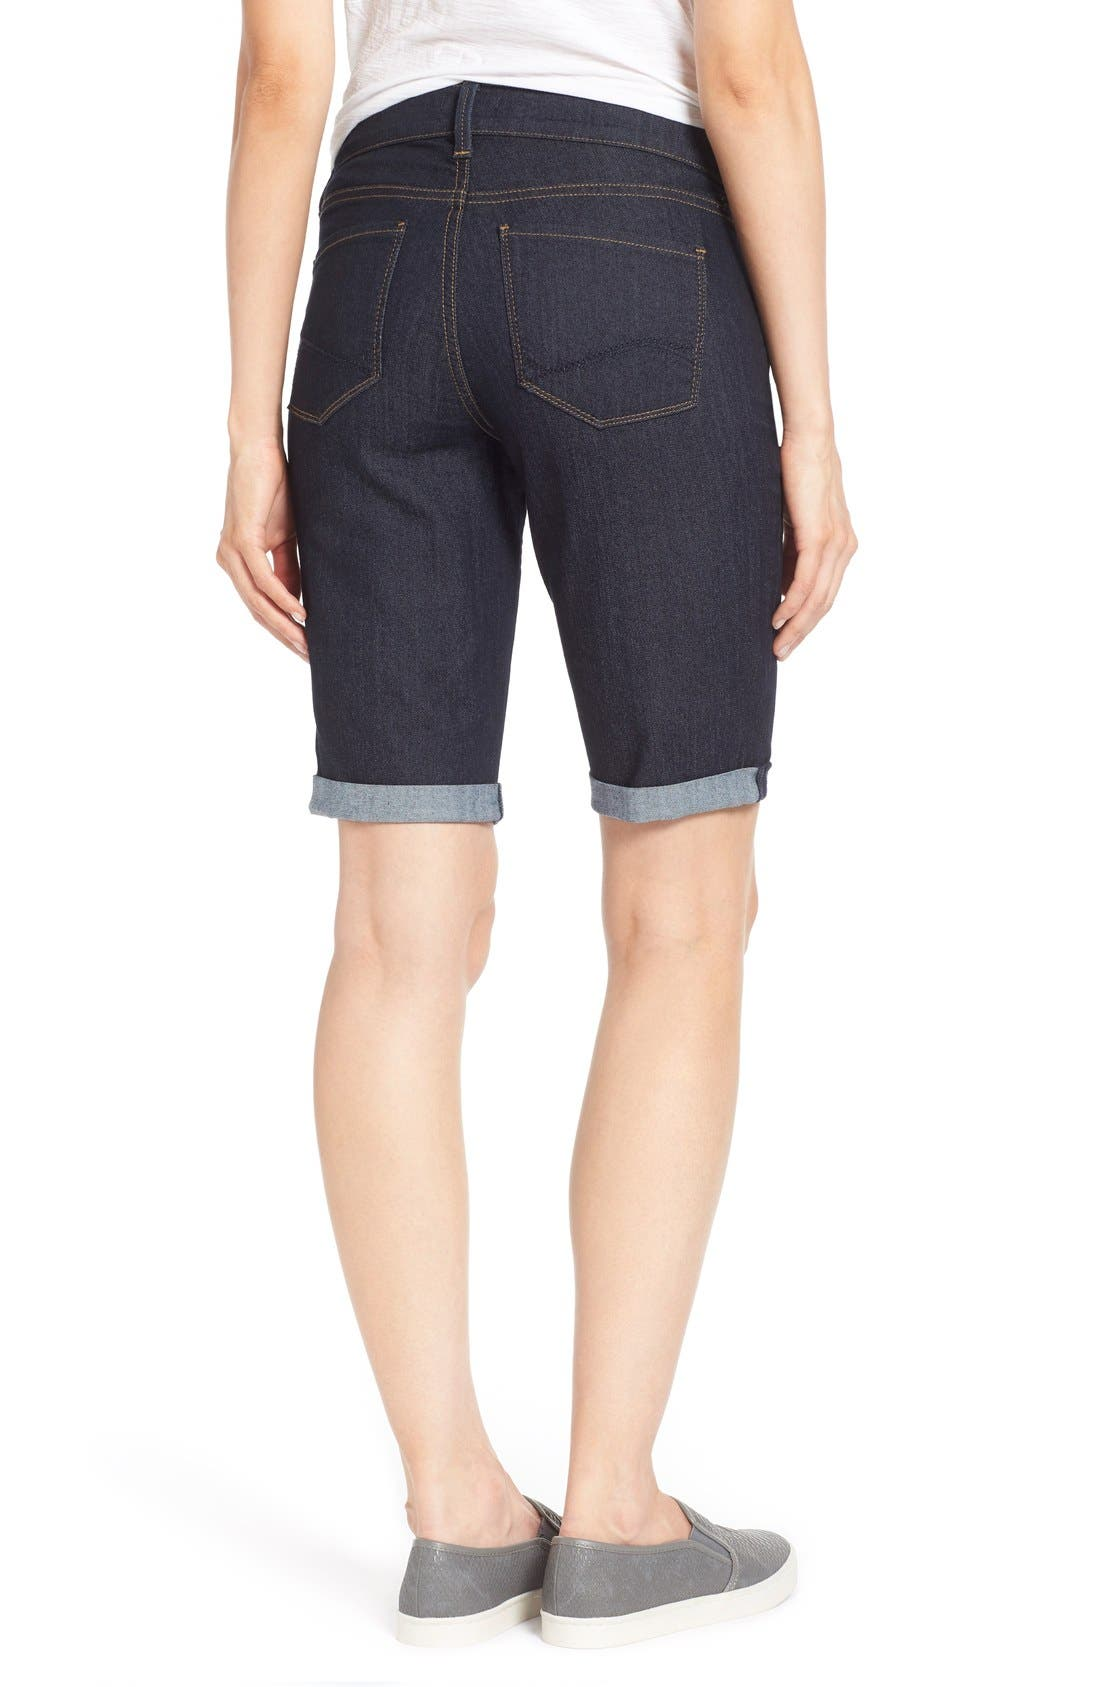 Alternate Image 2  - NYDJ 'Briella' Stretch Roll Cuff Denim Shorts (Regular & Petite)